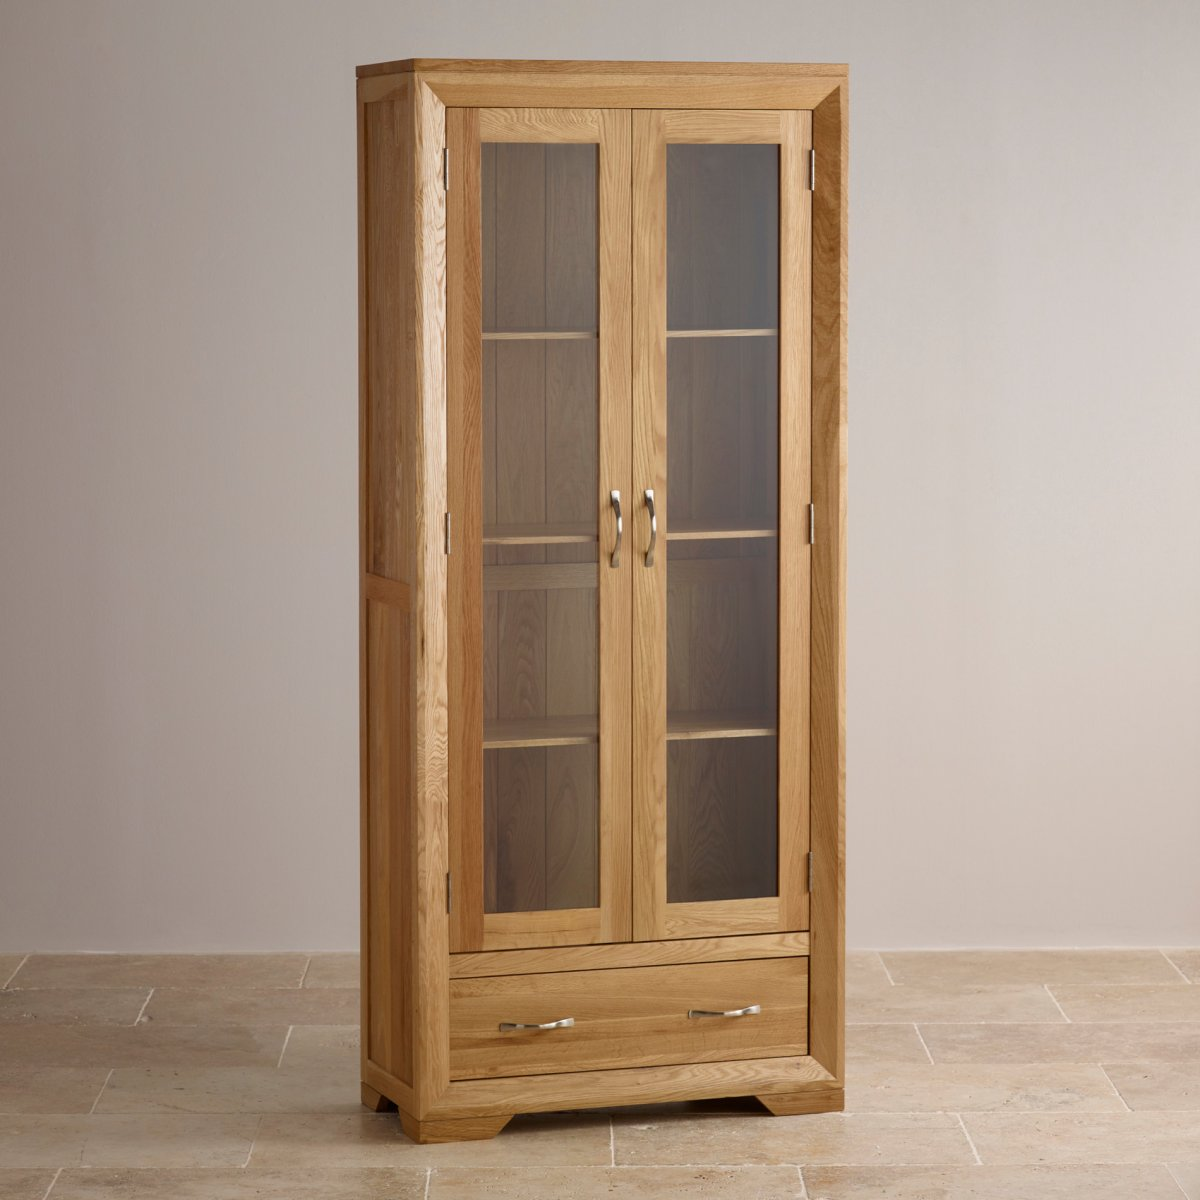 Bevel glazed display cabinet in solid oak oak furniture land for Solid oak furniture